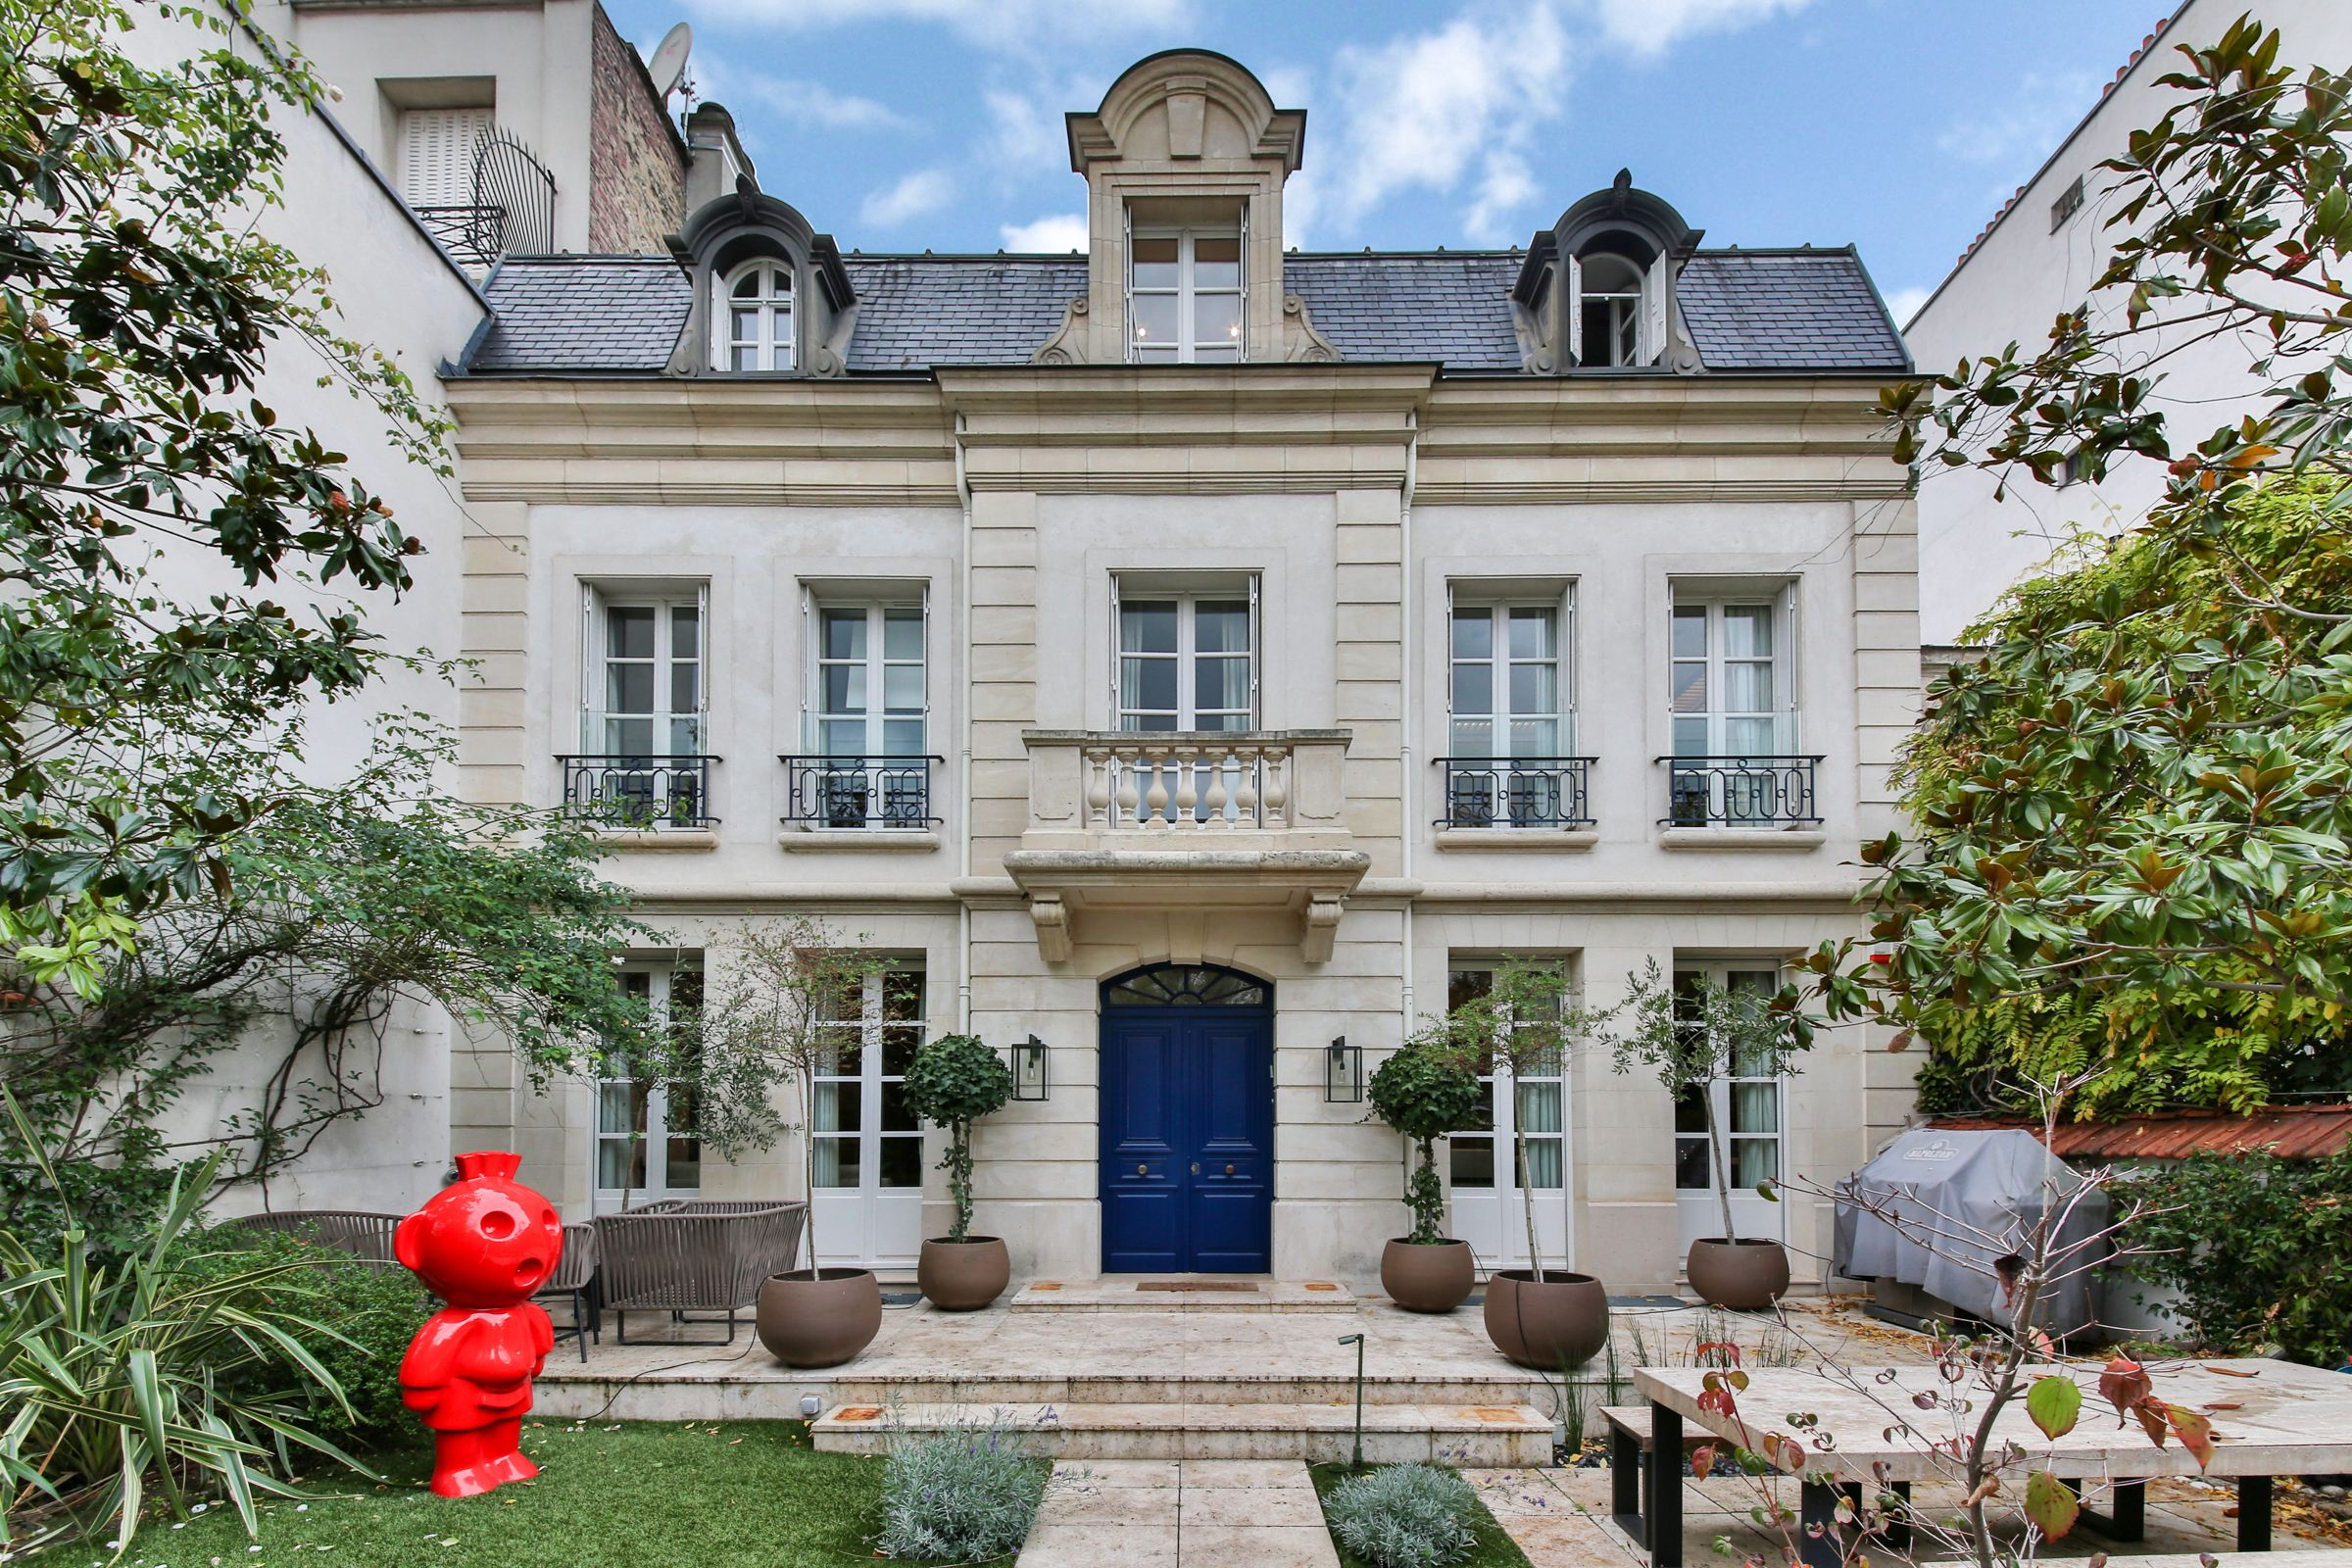 Property For Sale at Neuilly - Mairie. A 300 sq.m Private Mansion + garden and swimming pool